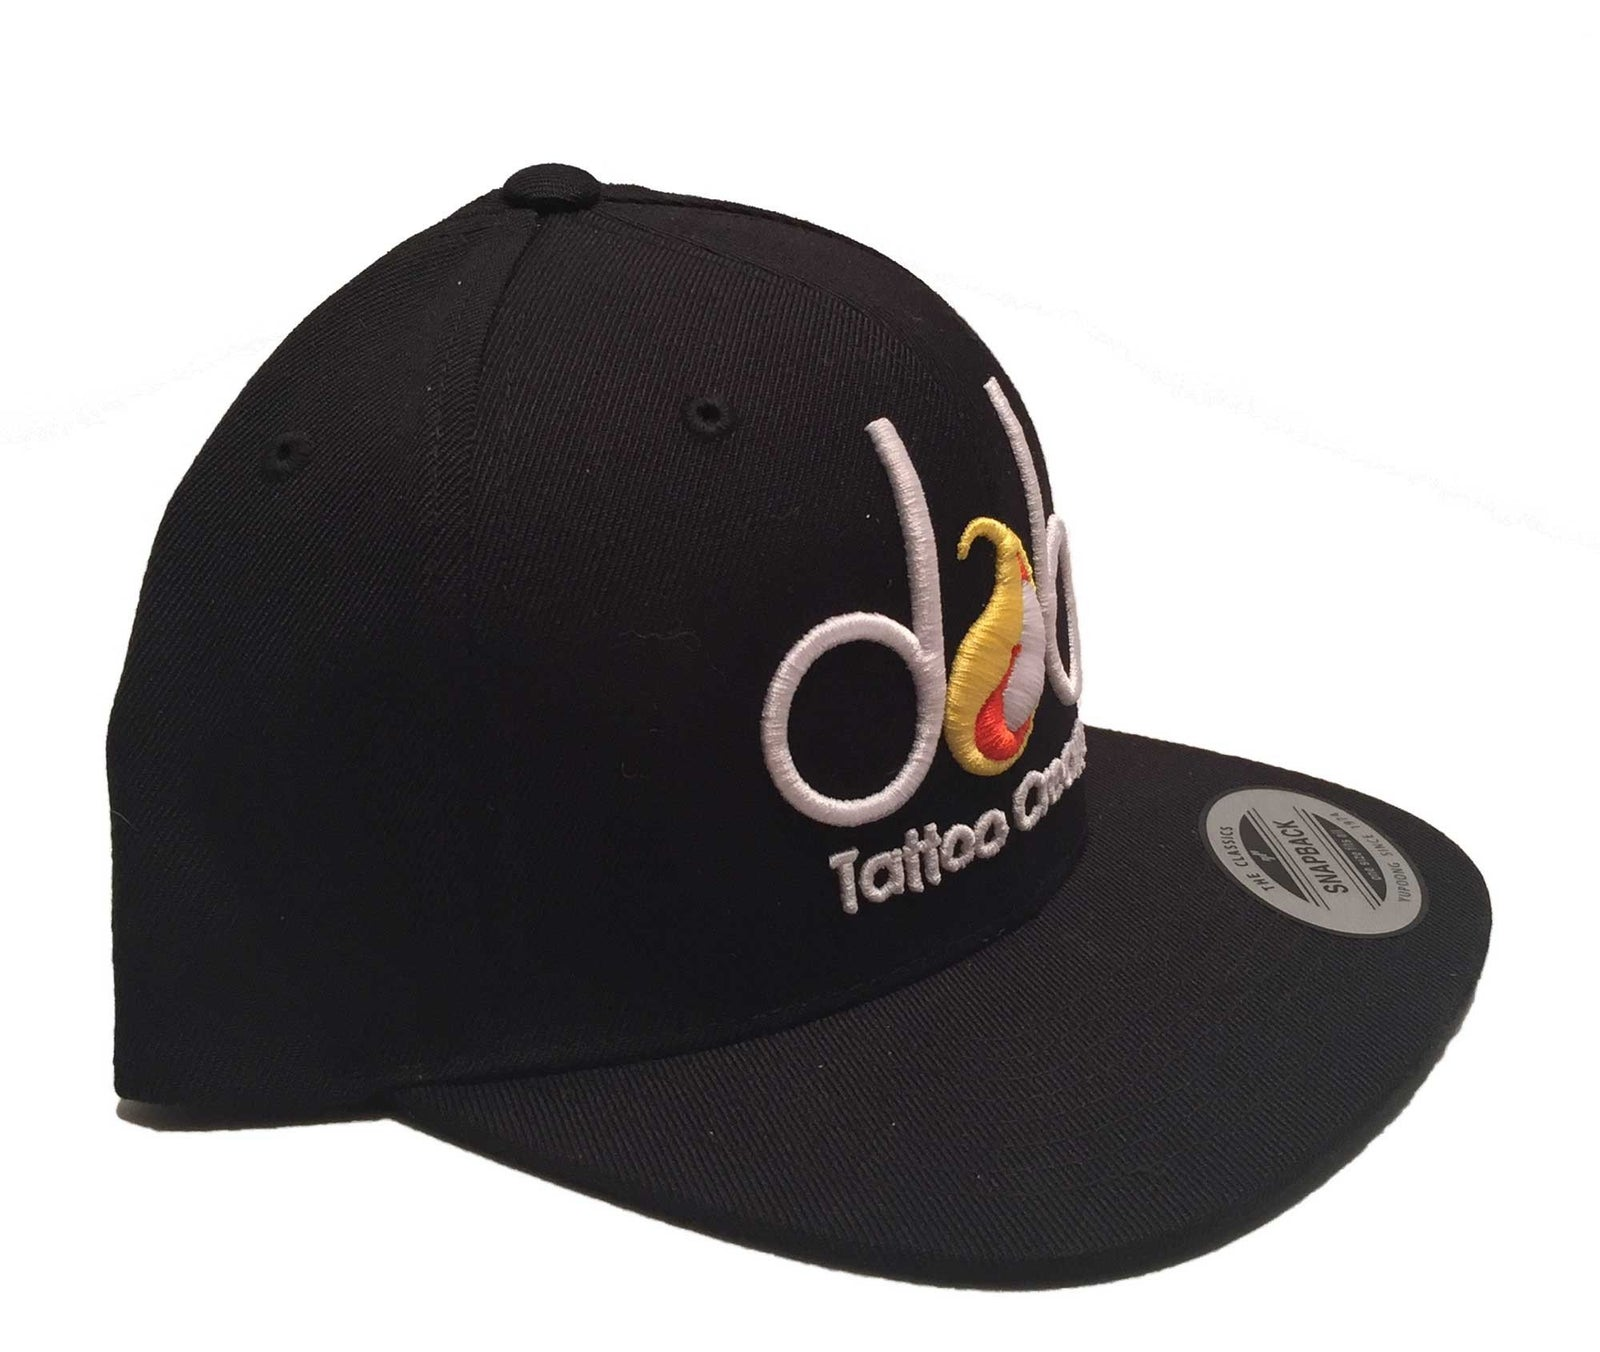 Dab Official 3D Embroidered Snapback Hat